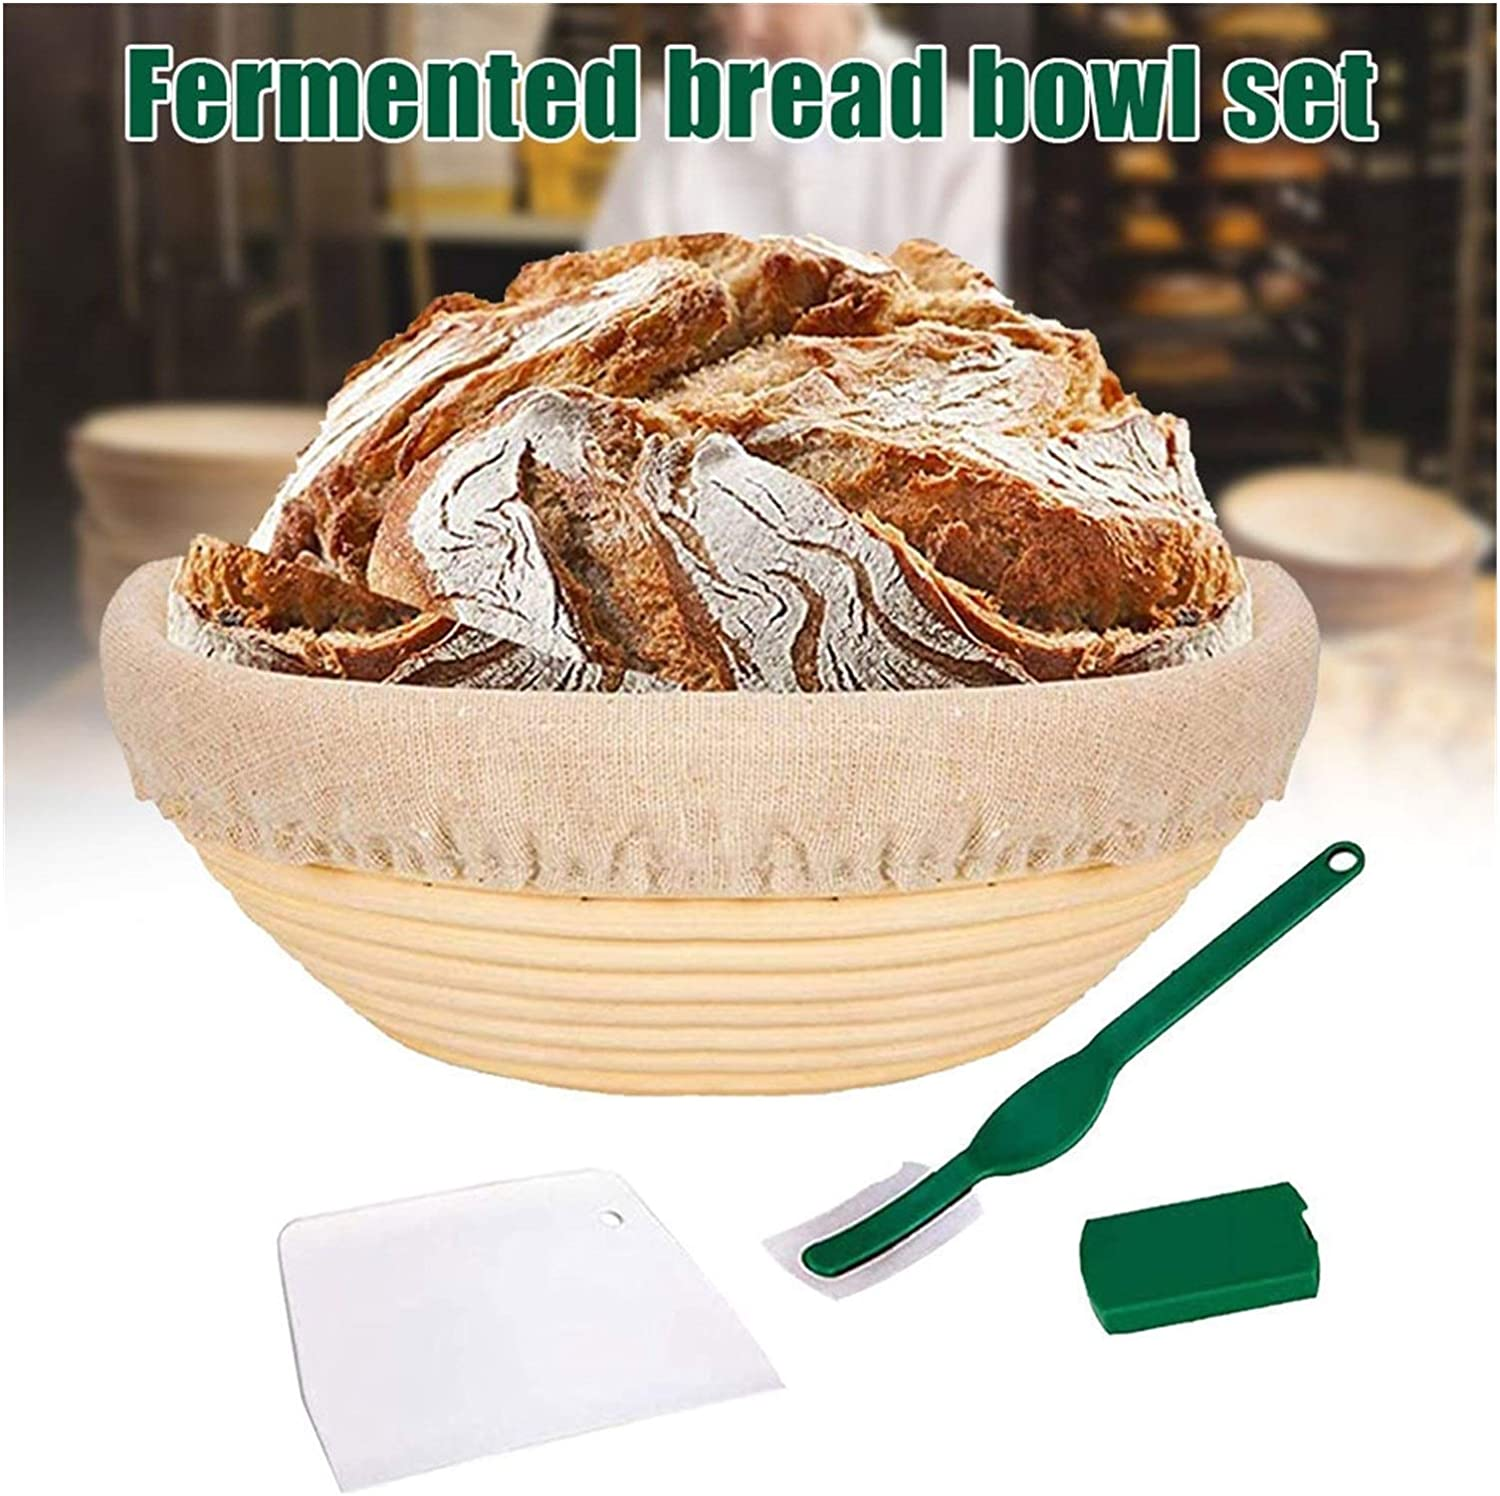 Super beauty product restock quality top! YWSZY Bread Proofing Baskets 9 wi shopping Basket Set Inch